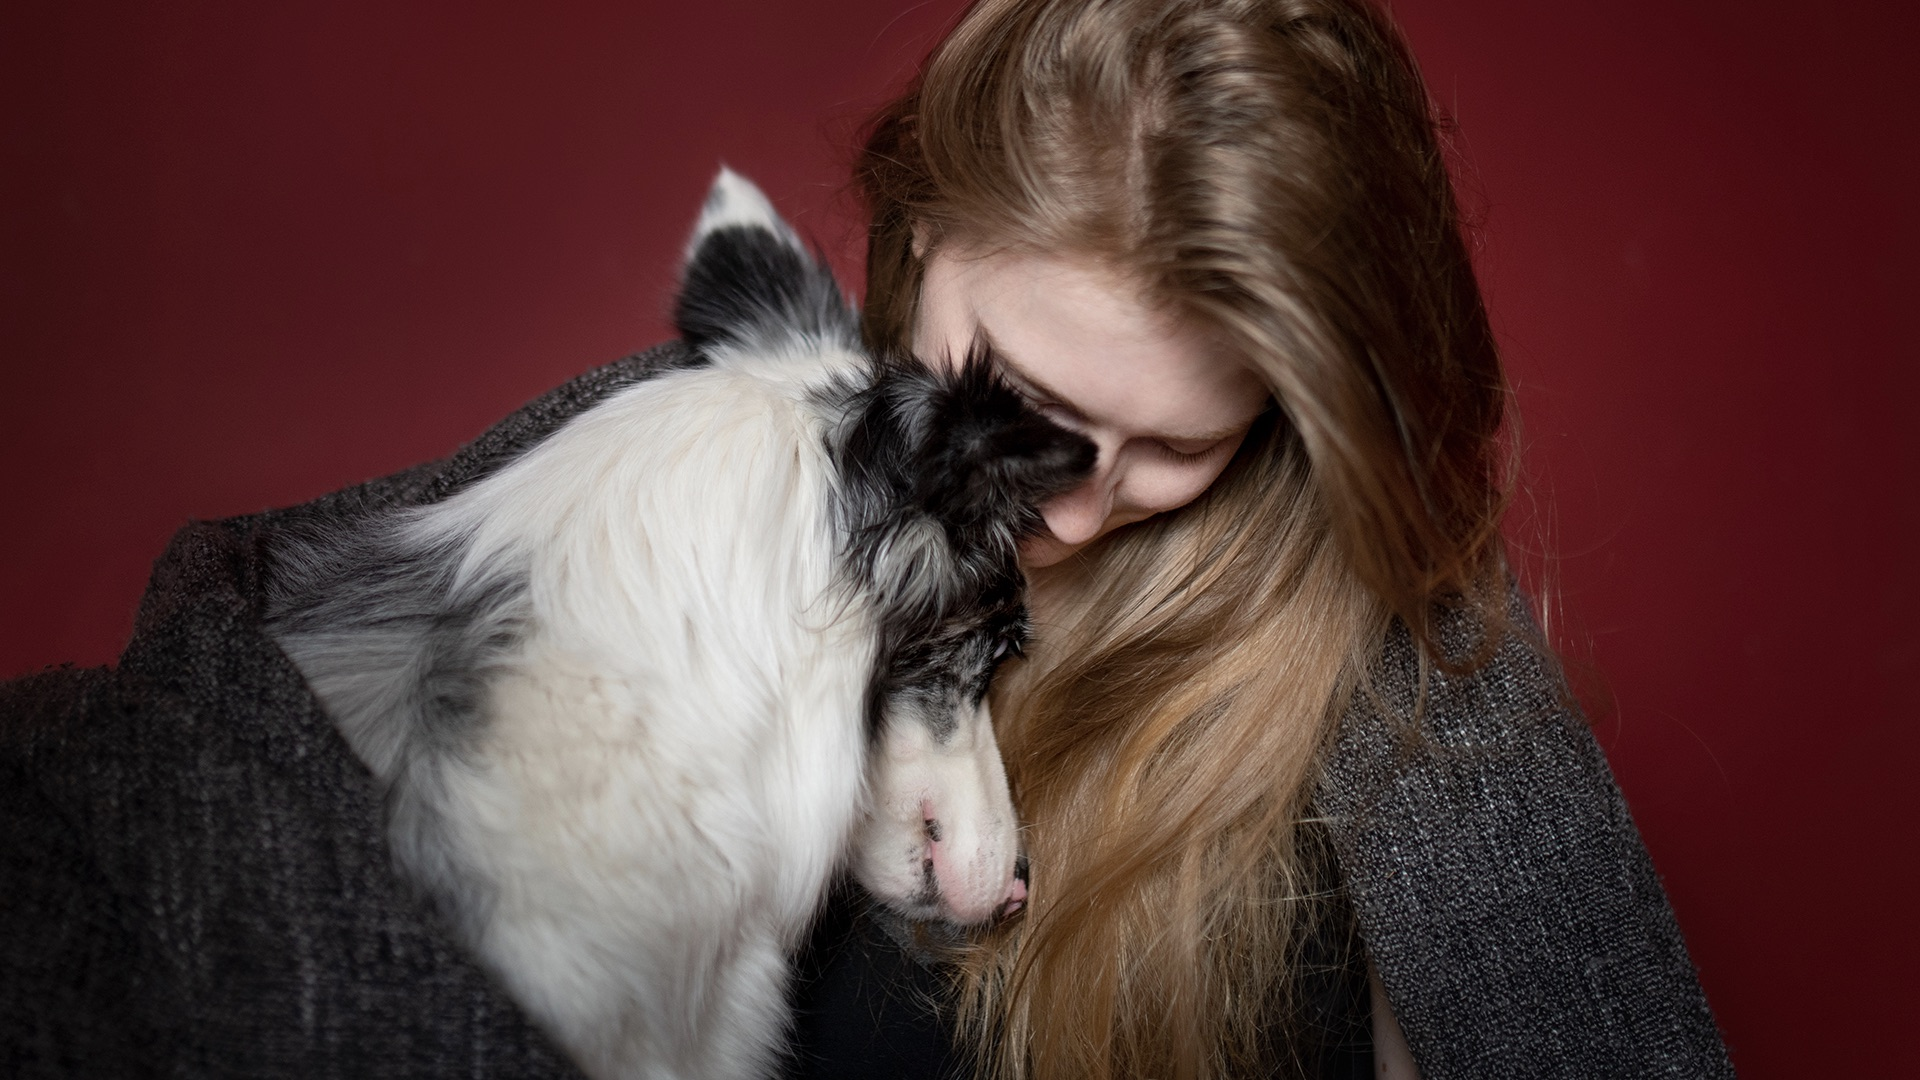 Licensing Contributor Iza Lyson on photographing dogs